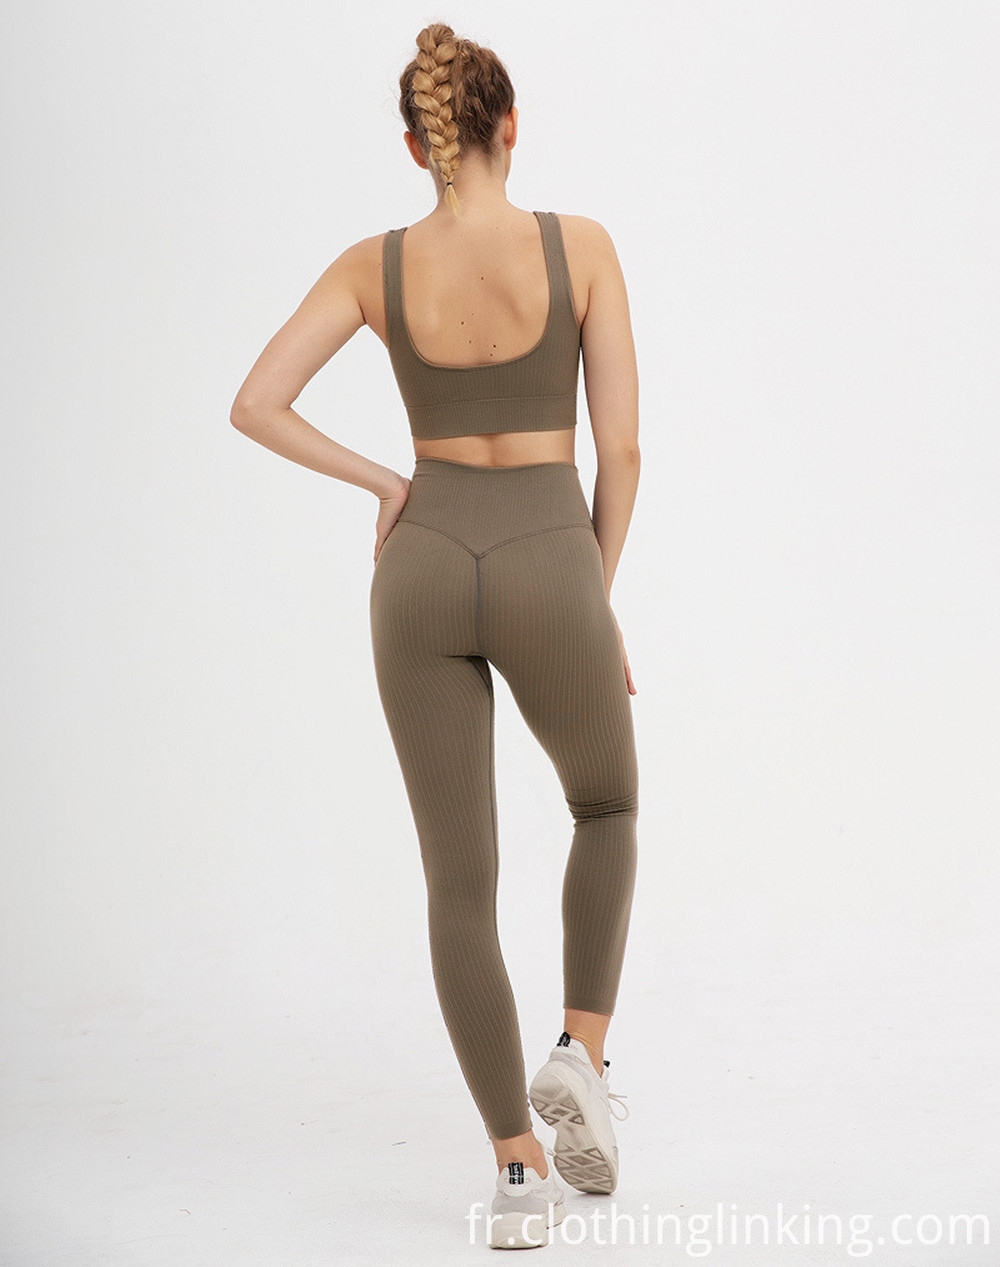 women's ribbed yoga outfits (2)